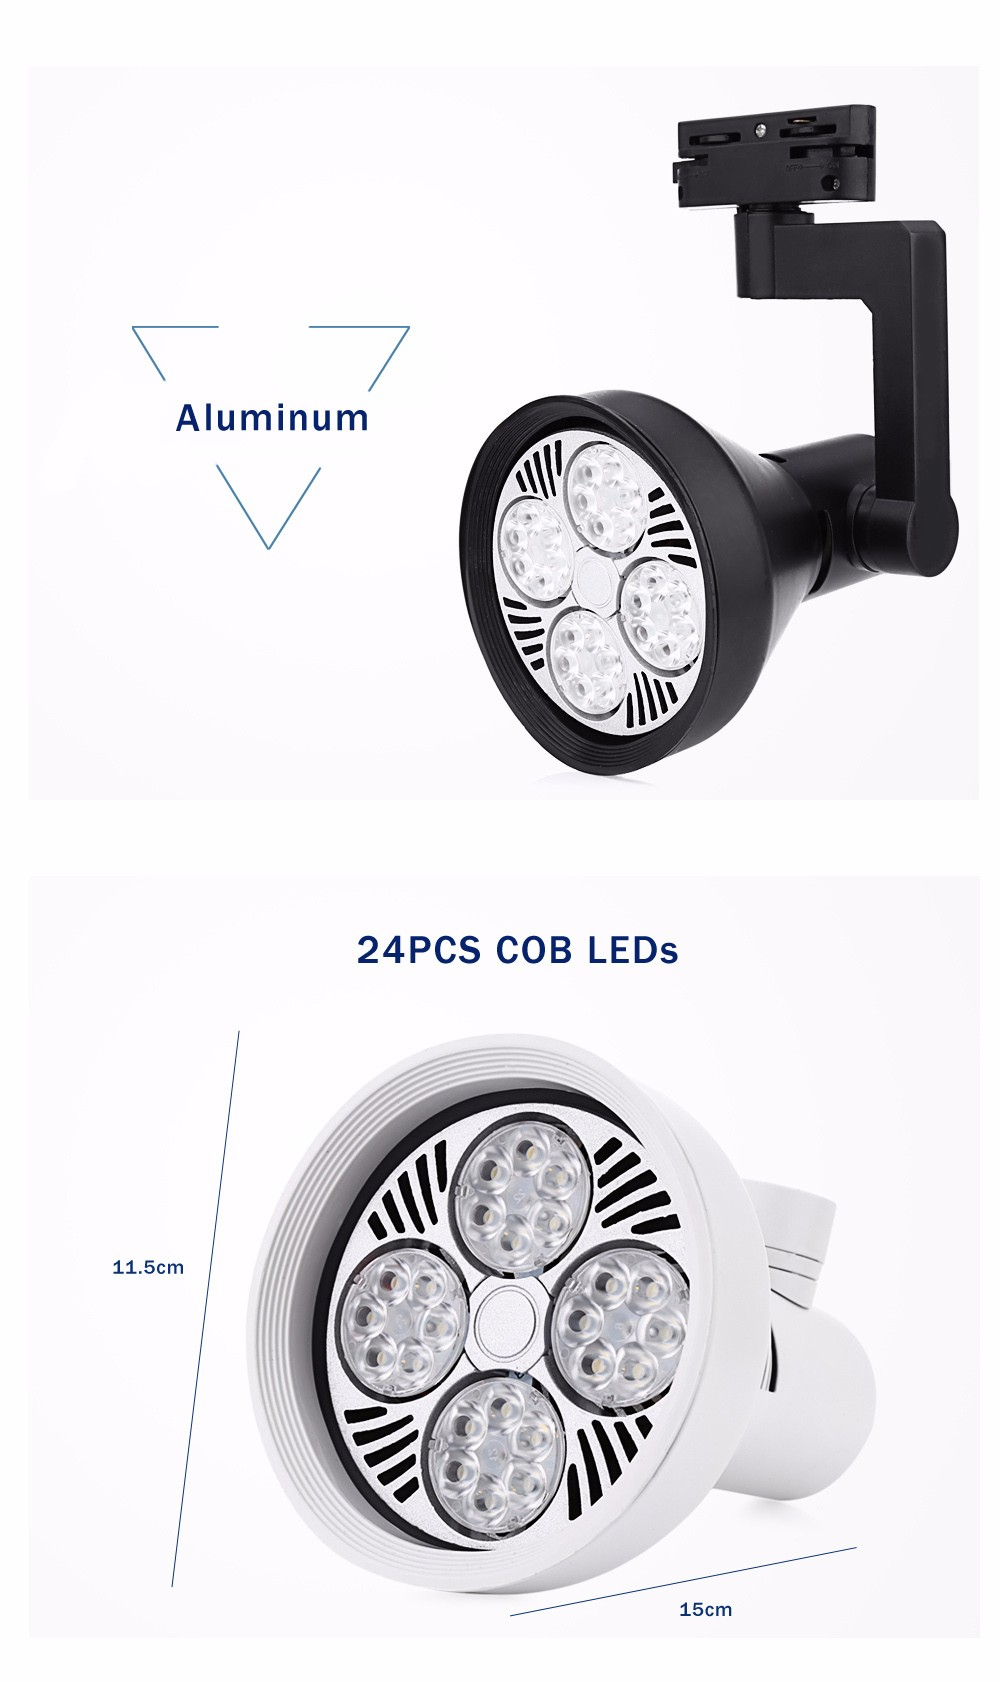 AC 110 - 240V 30W 2700LM COB LED Spotlight Track Lamp Clothing Store Ceiling Wall Light